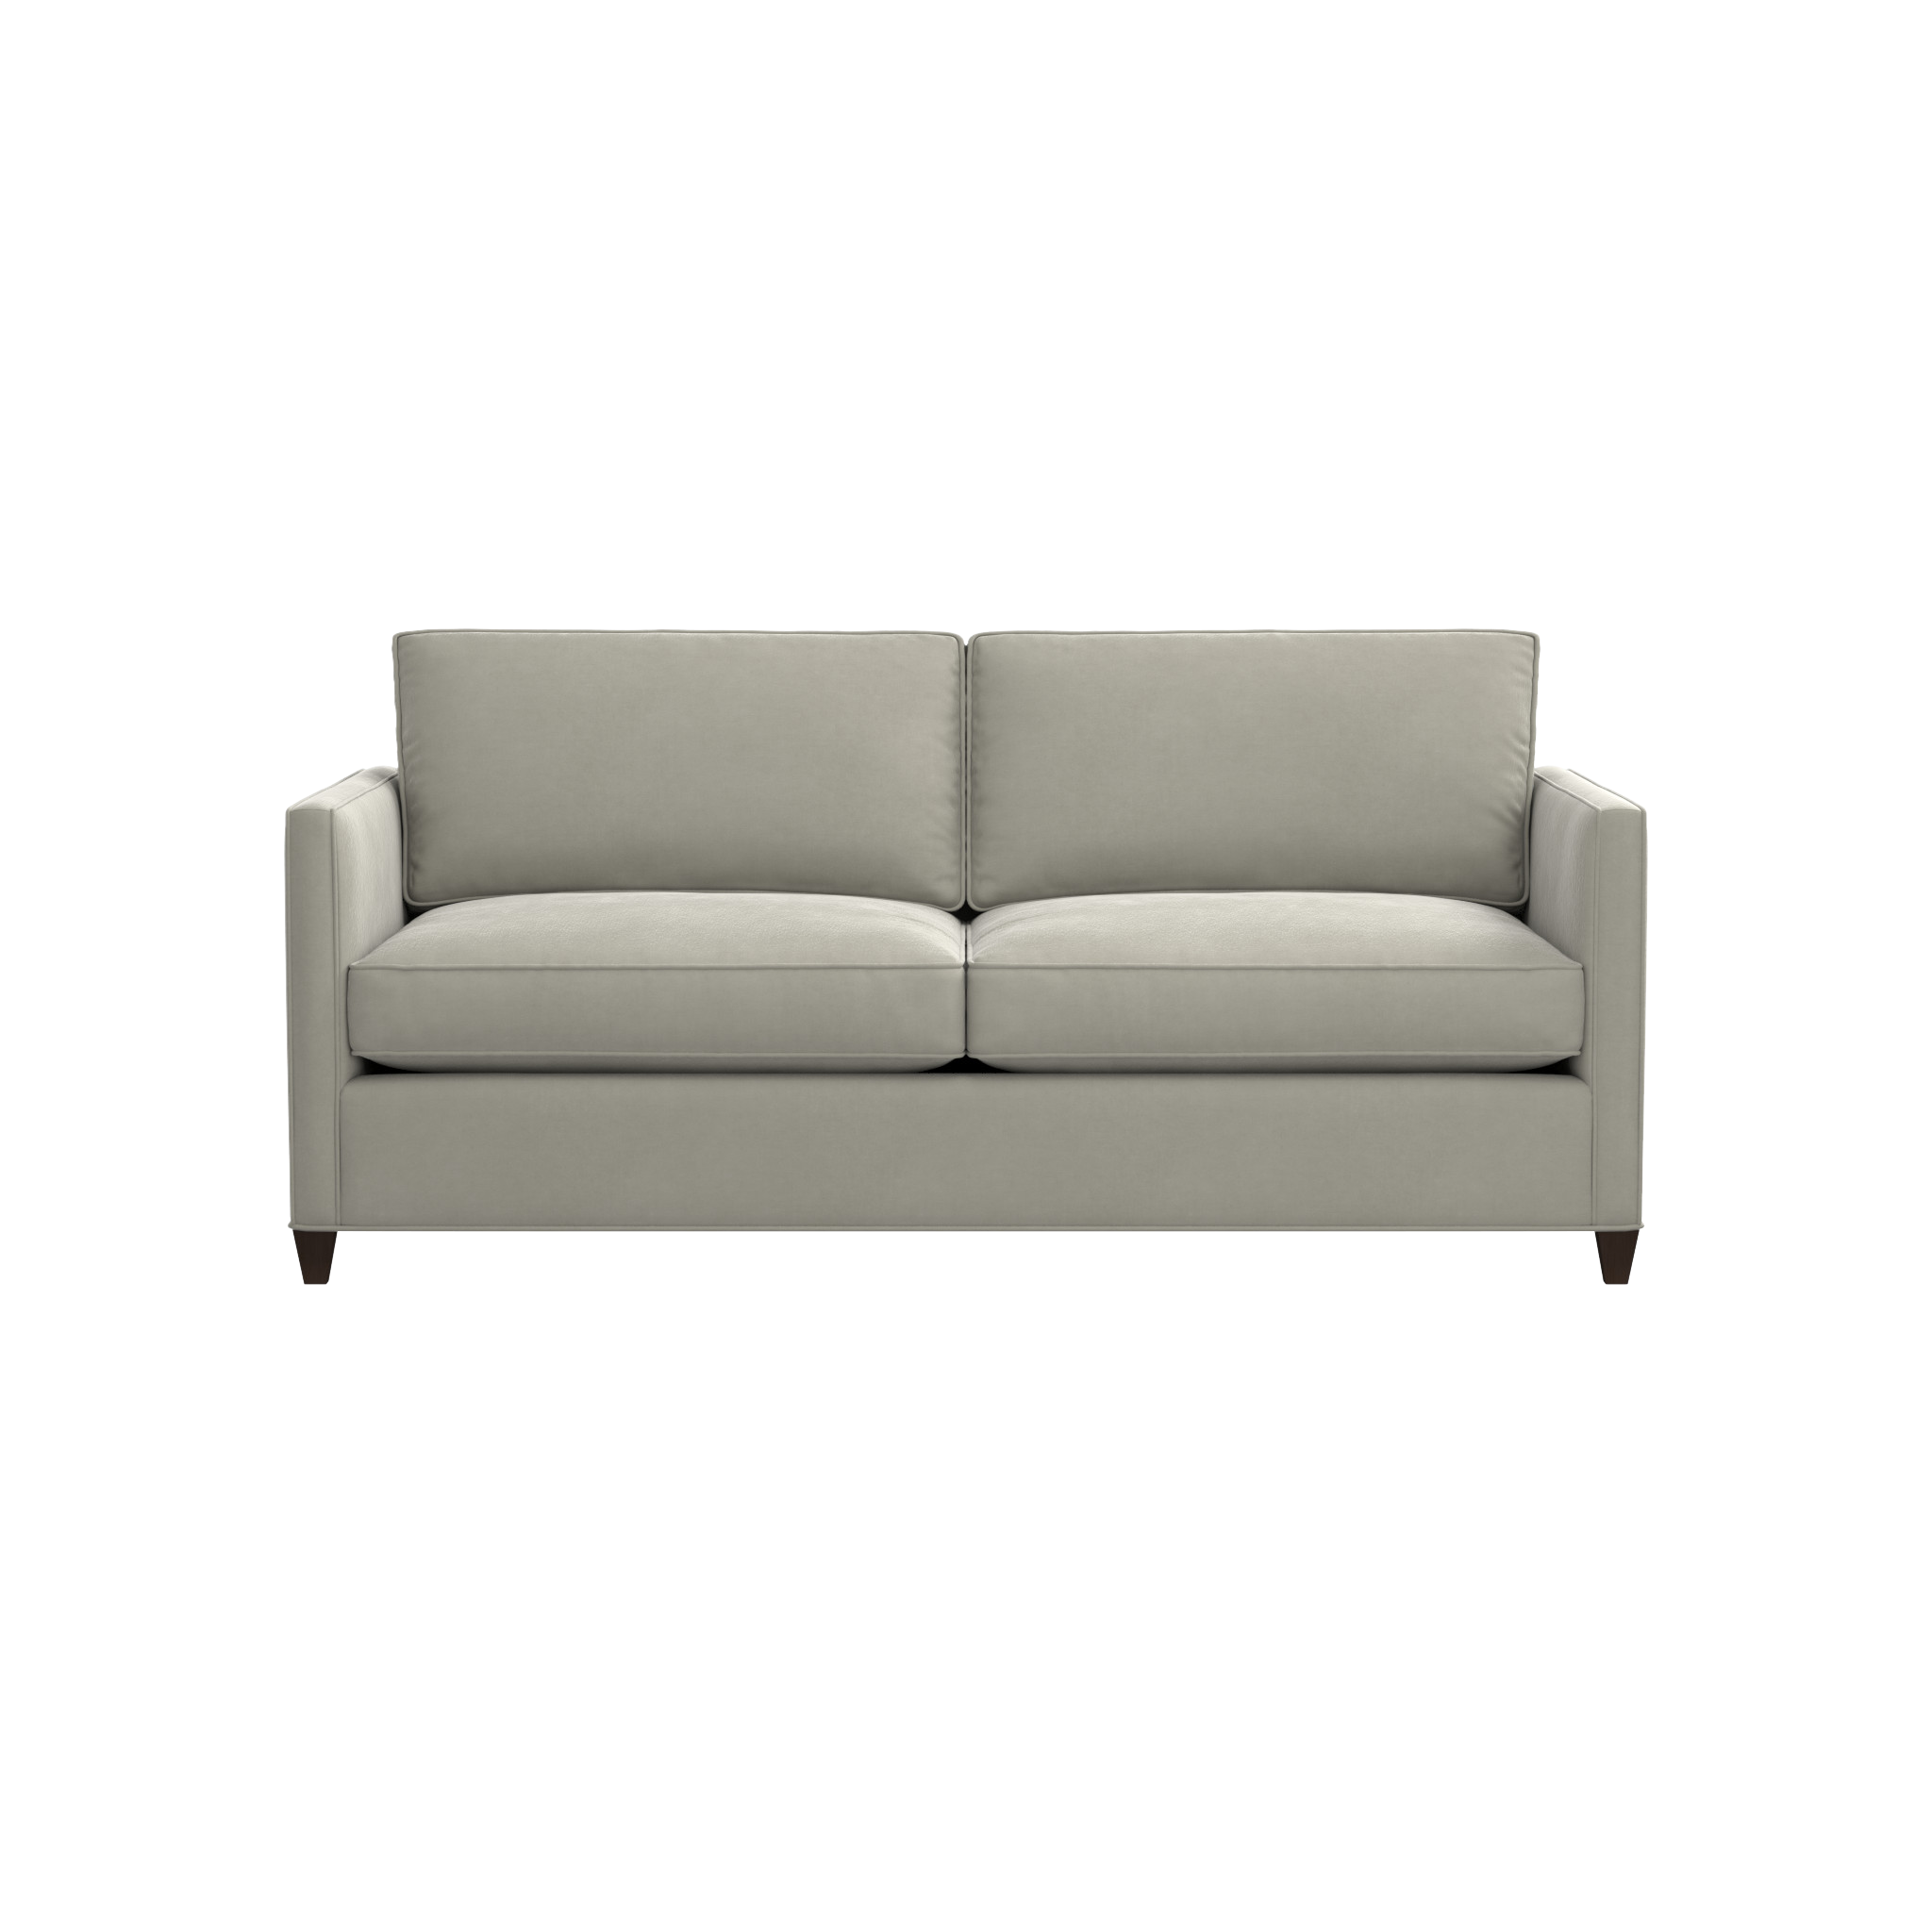 Shop Dryden Small Modern Sofa For A Bit Of Polish And Classic